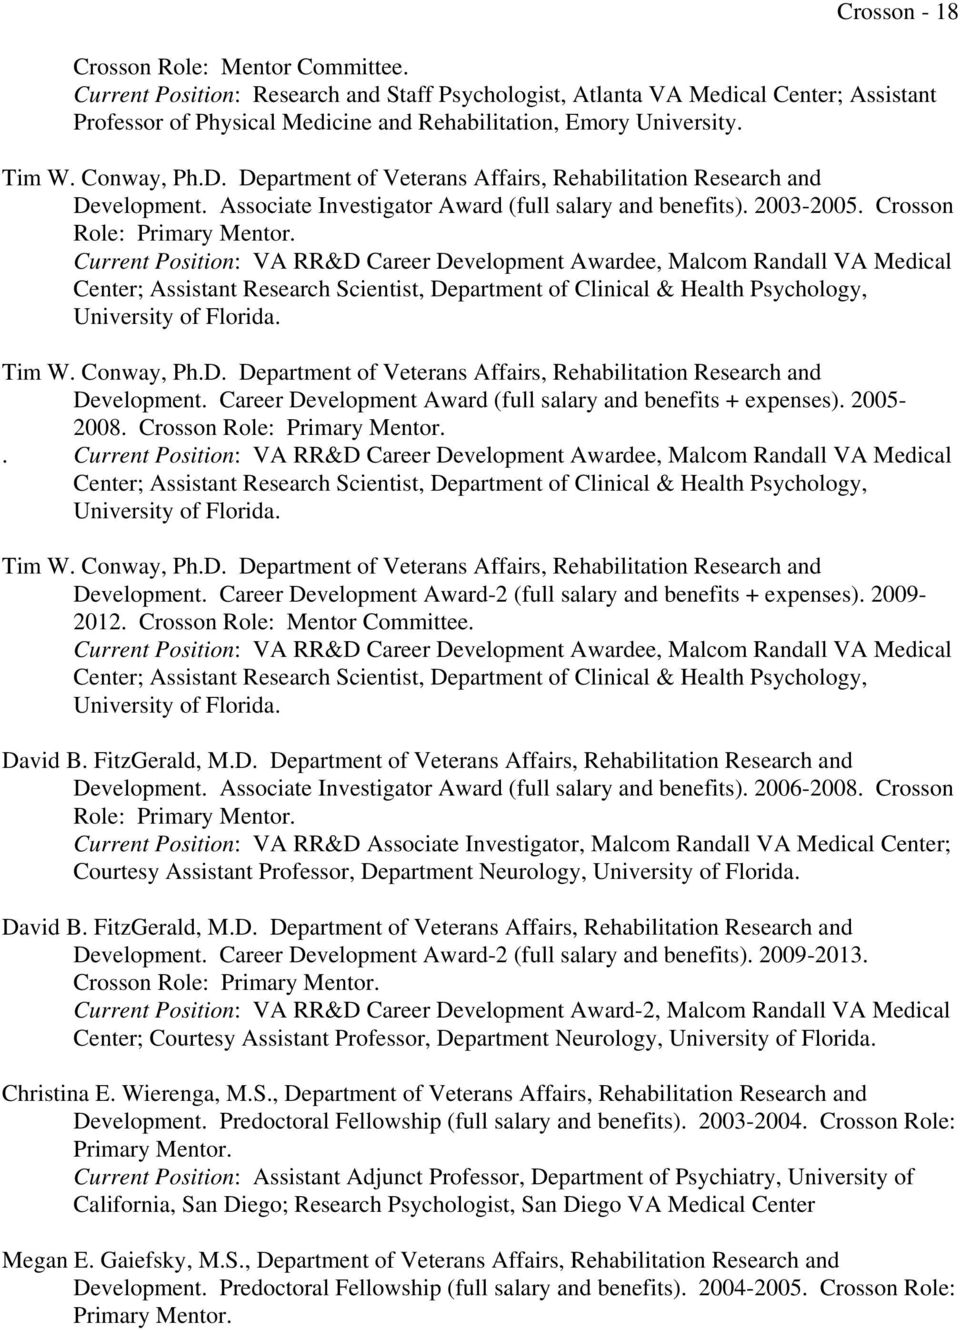 Department of Veterans Affairs, Rehabilitation Research and Development. Associate Investigator Award (full salary and benefits). 2003-2005. Crosson Role: Primary Mentor.